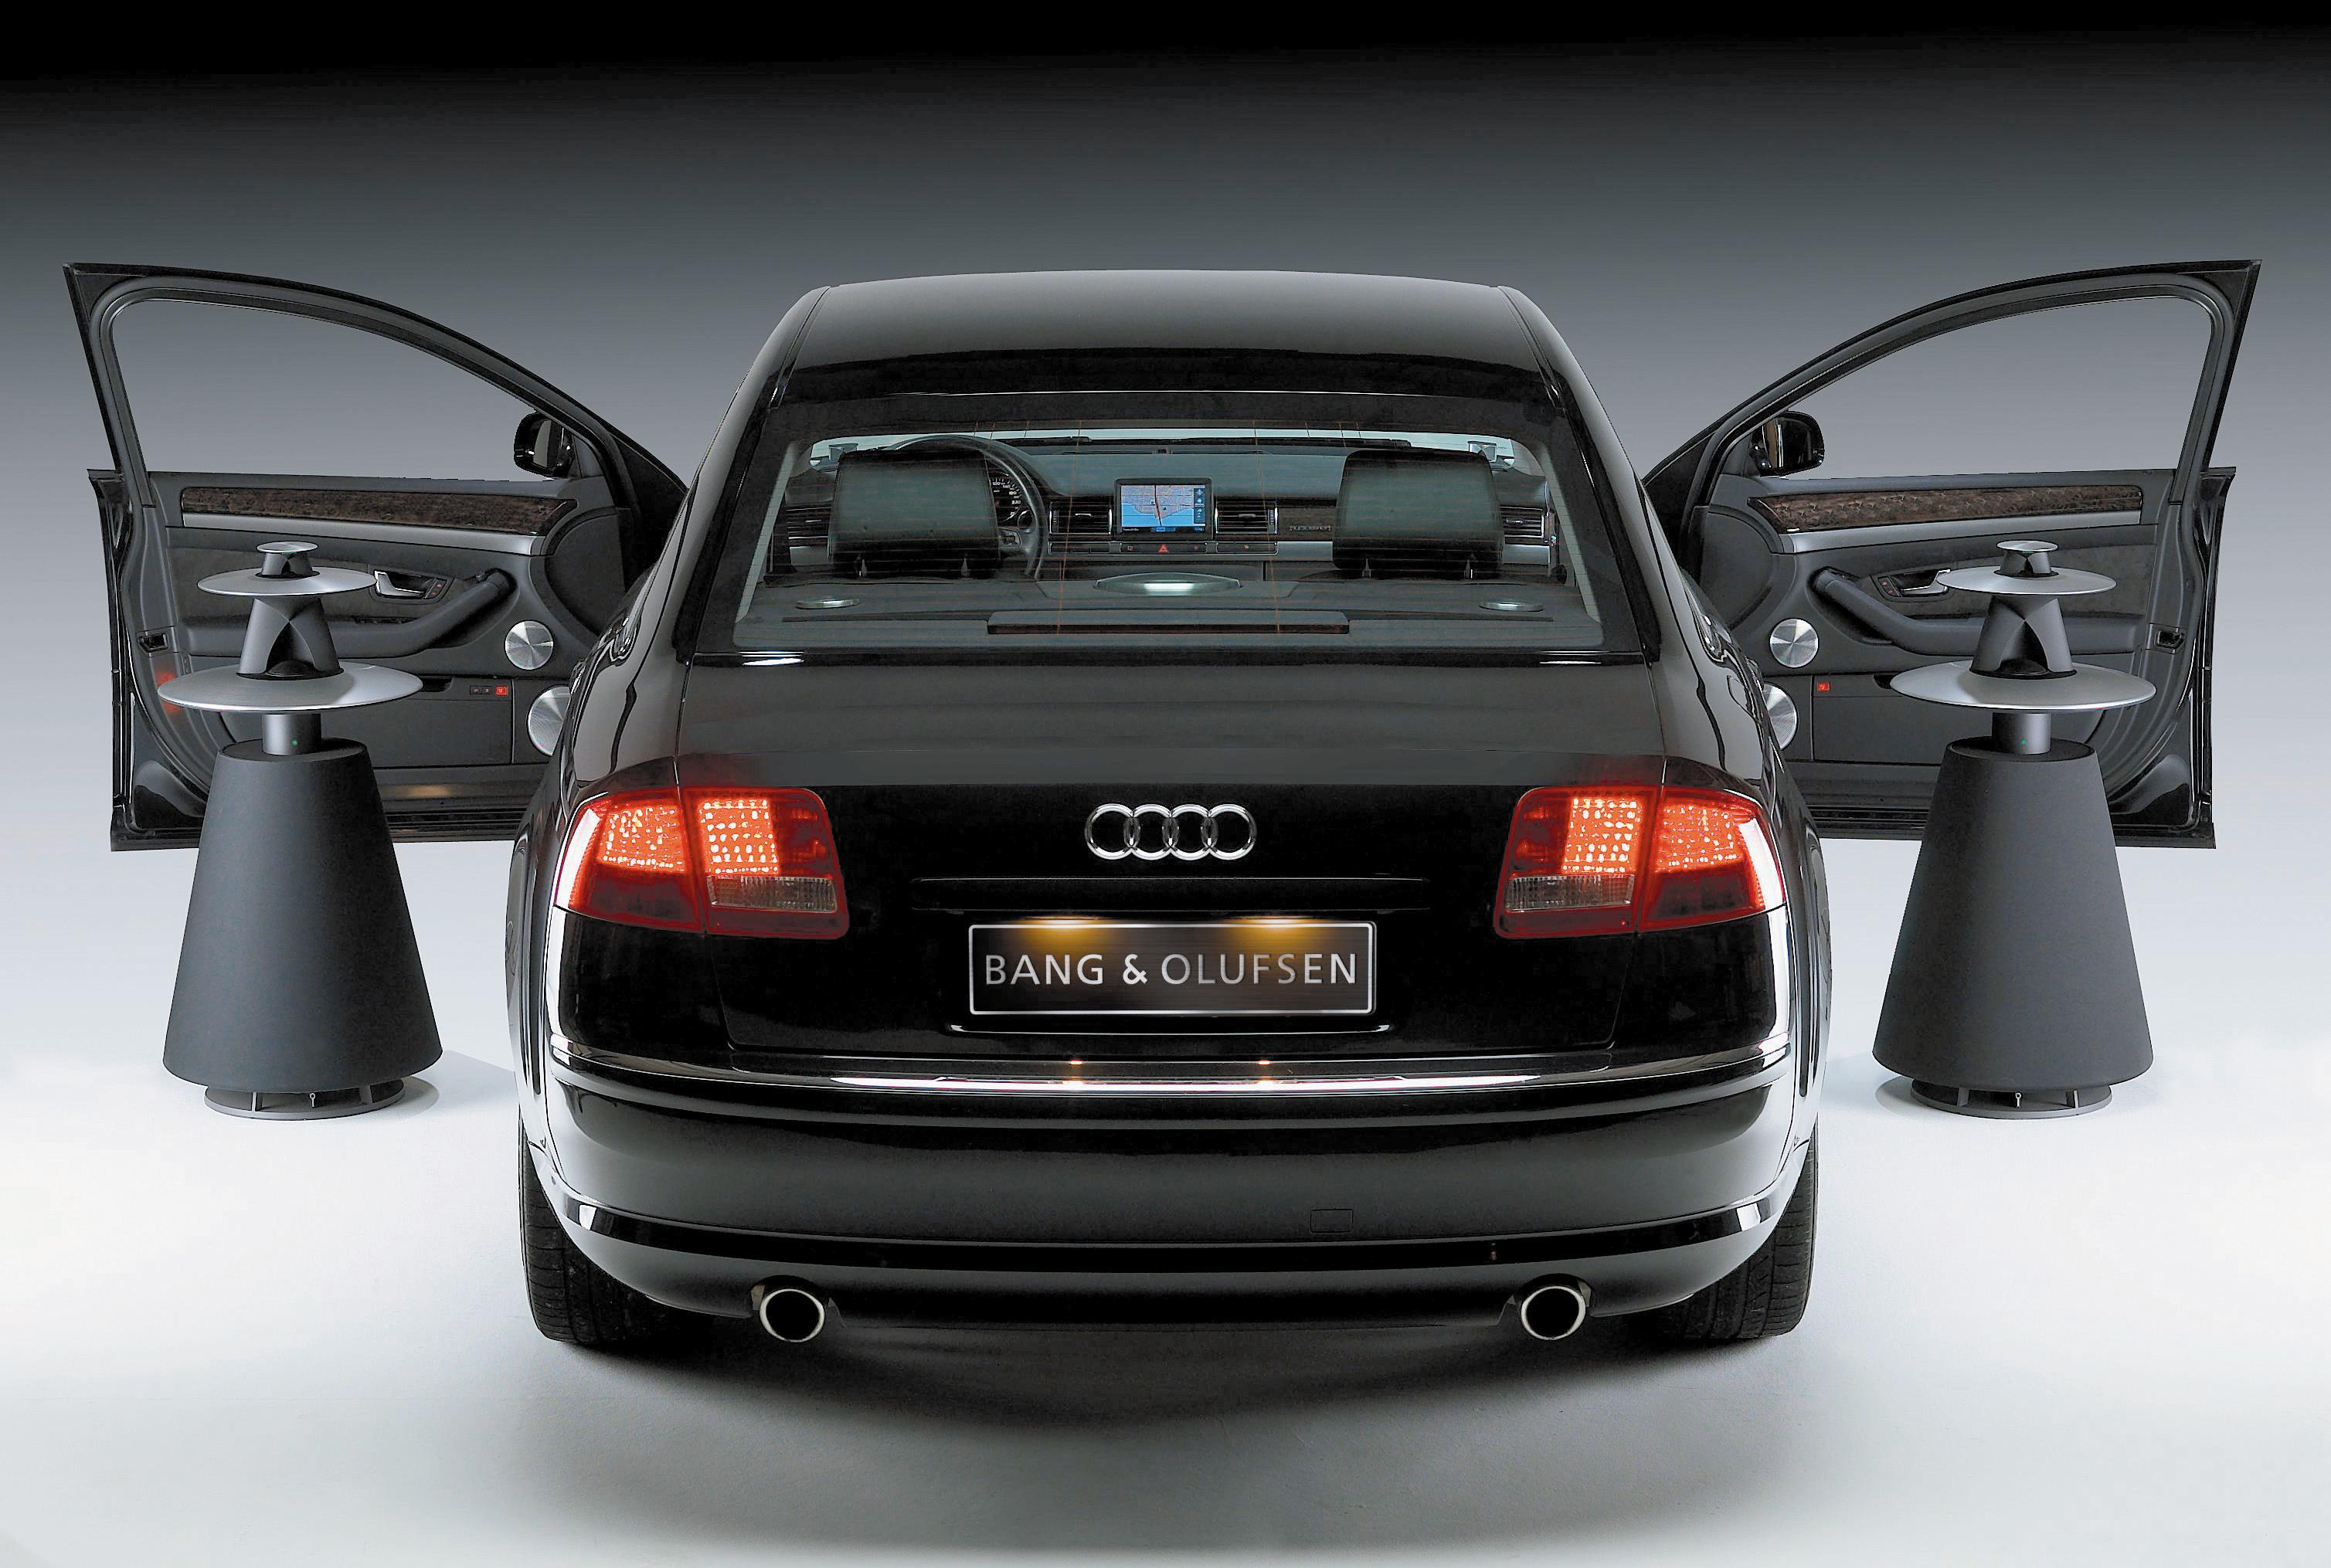 Bang Olufsen Sound System In The Audi A8 Top Speed